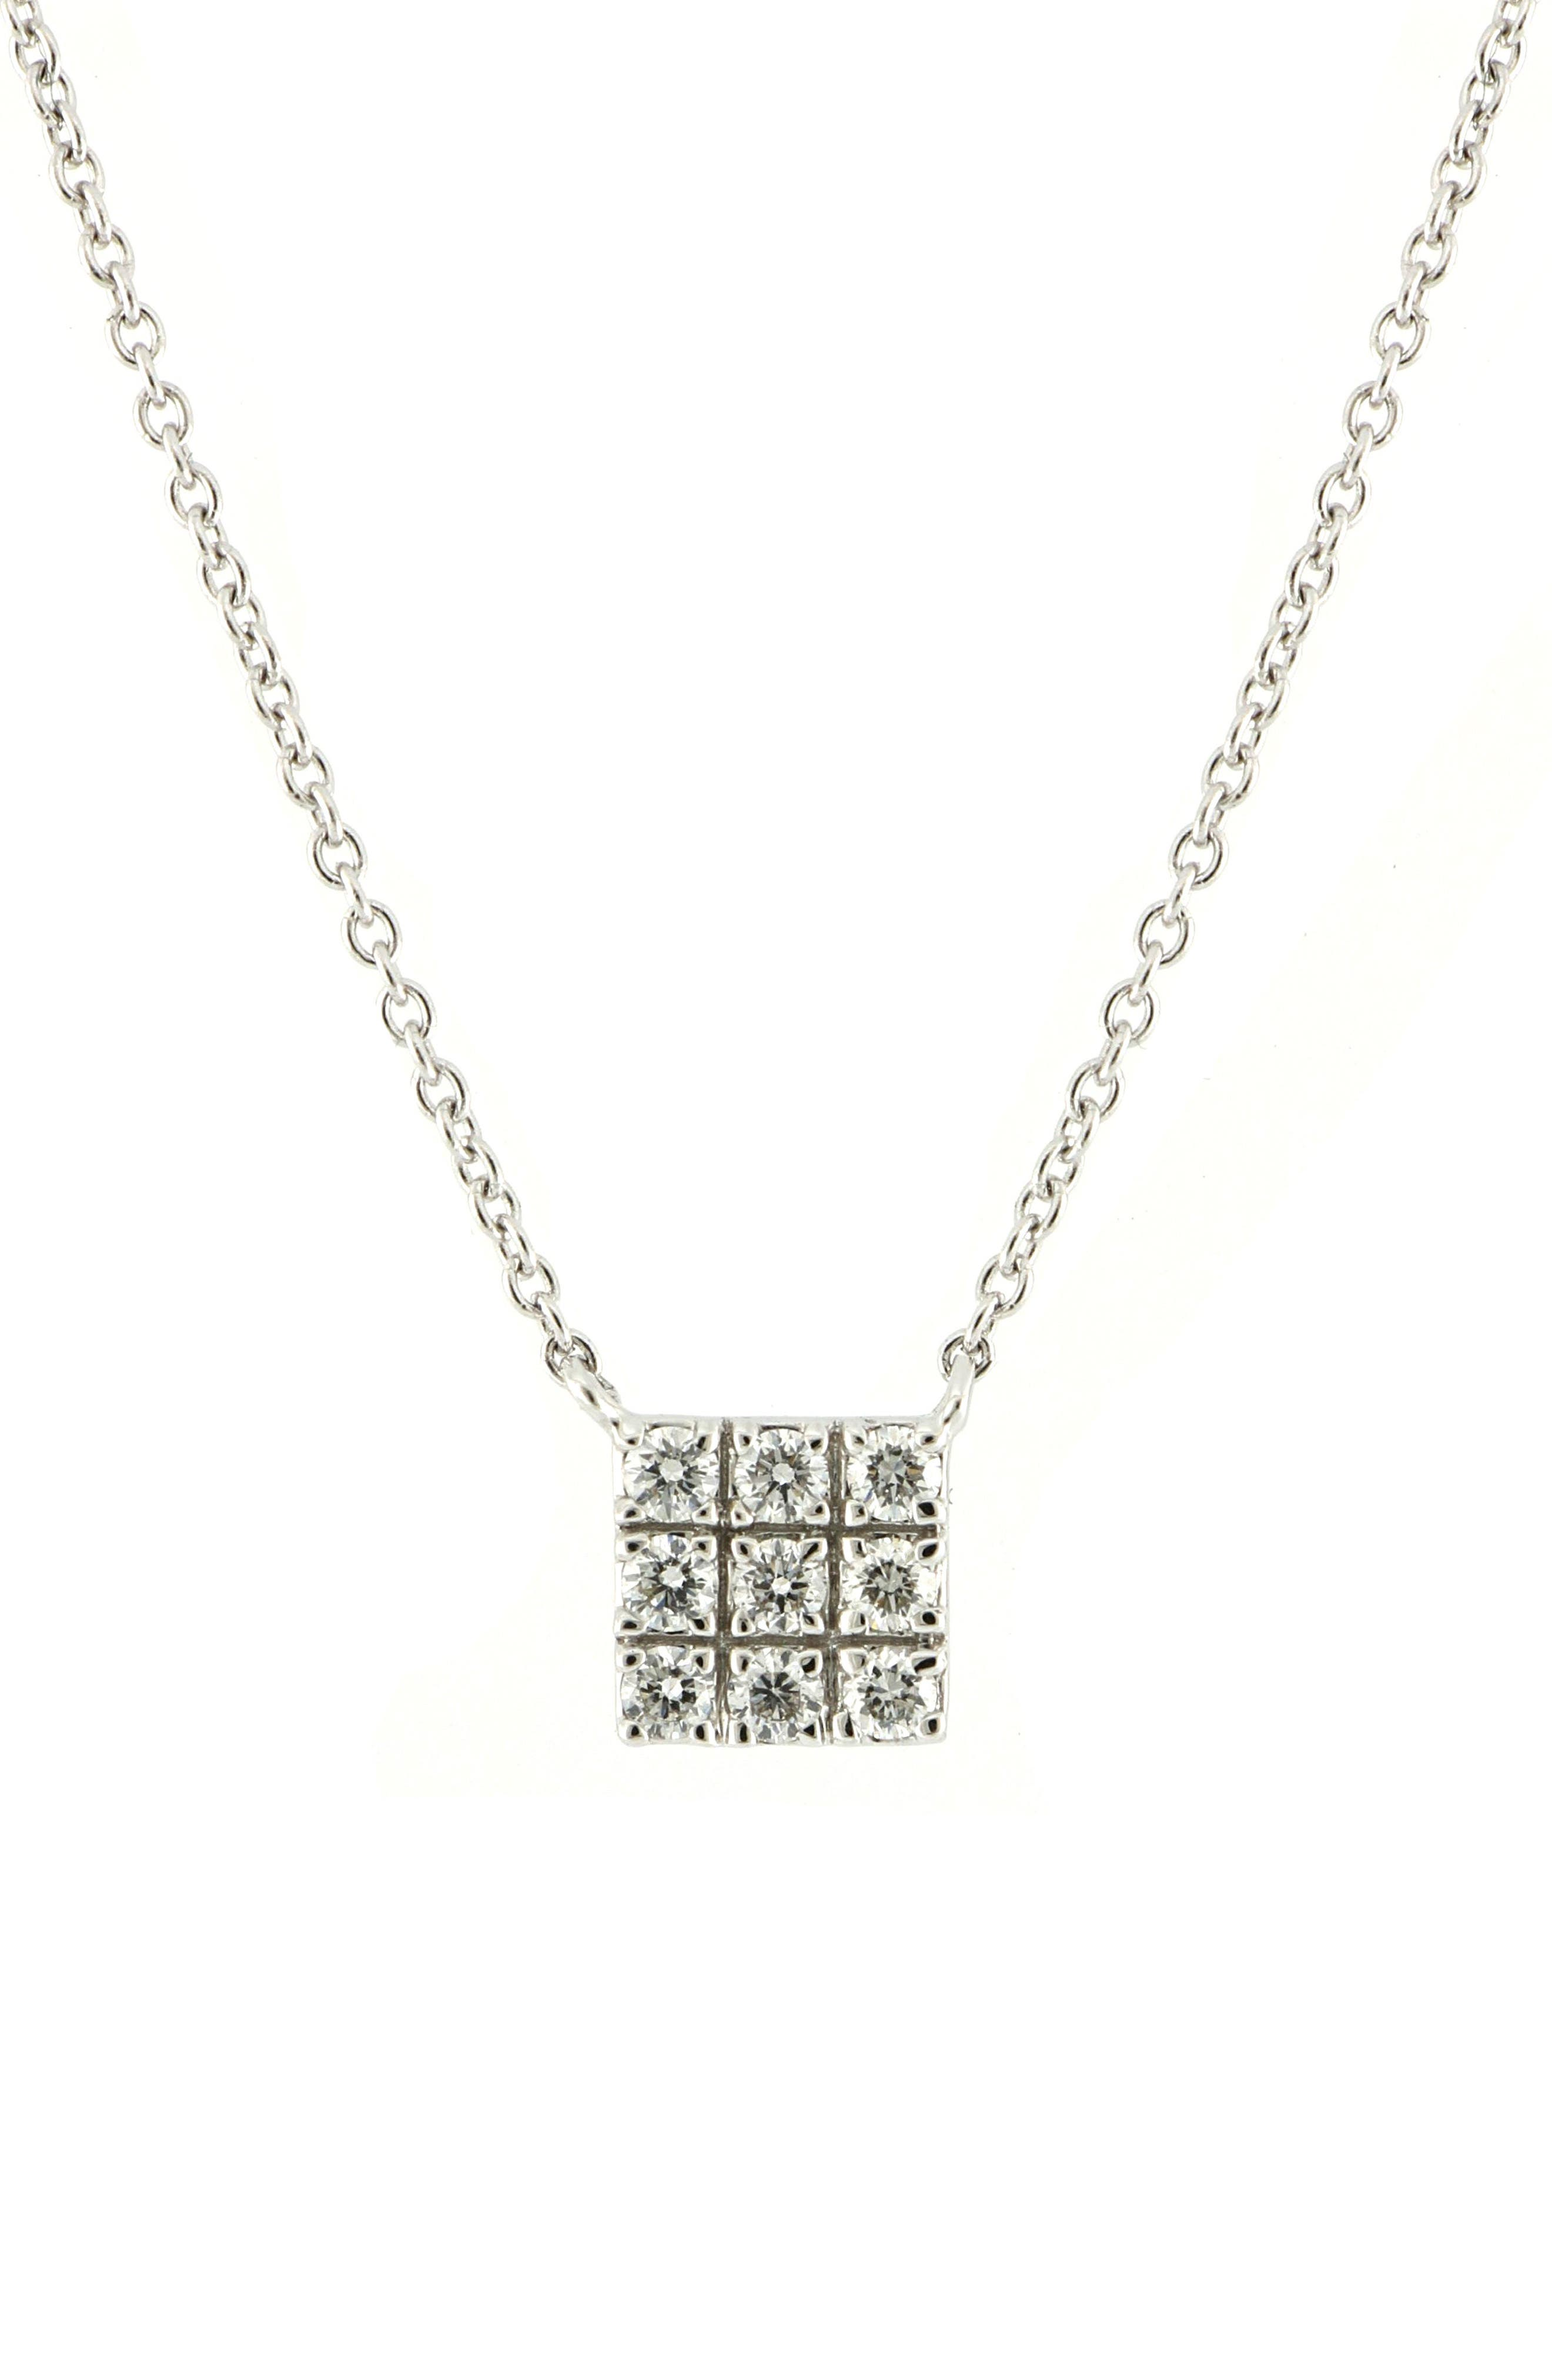 Kiera Square Pendant Necklace,                             Main thumbnail 1, color,                             WHITE GOLD